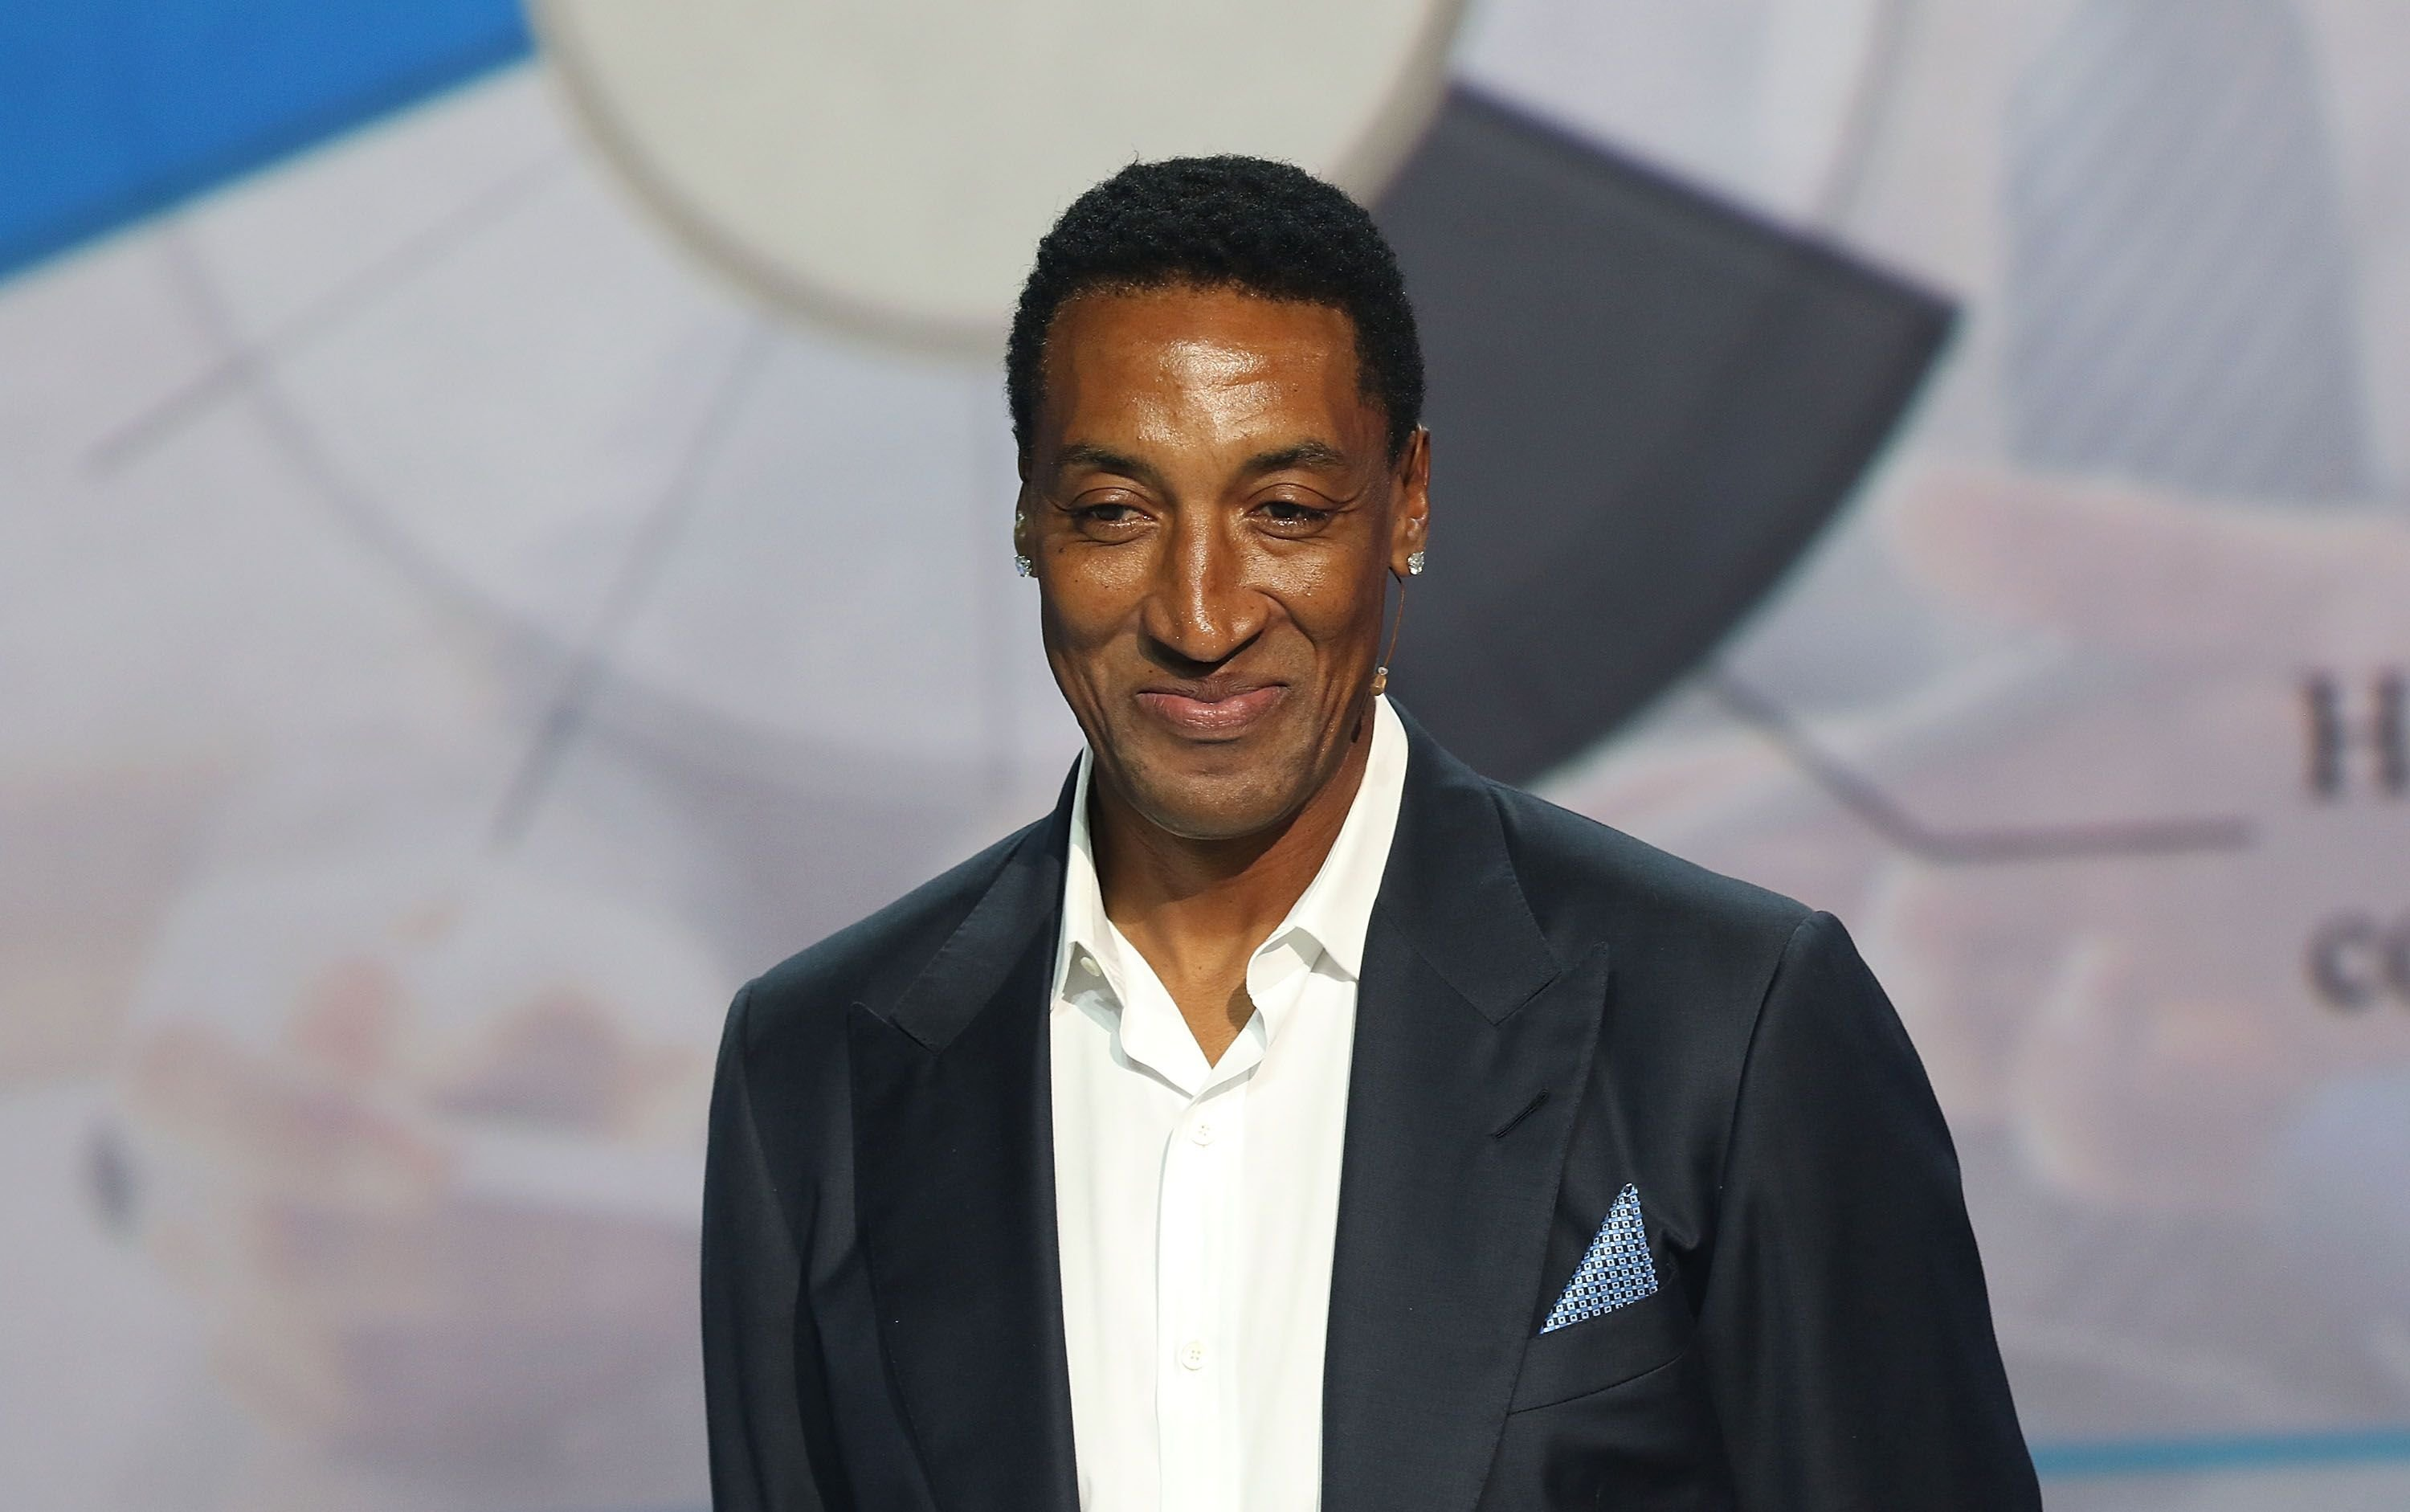 Scottie Pippen At Market America Conference 2016 at American Airlines Arena on February 4, 2016 | Photo: Getty Images